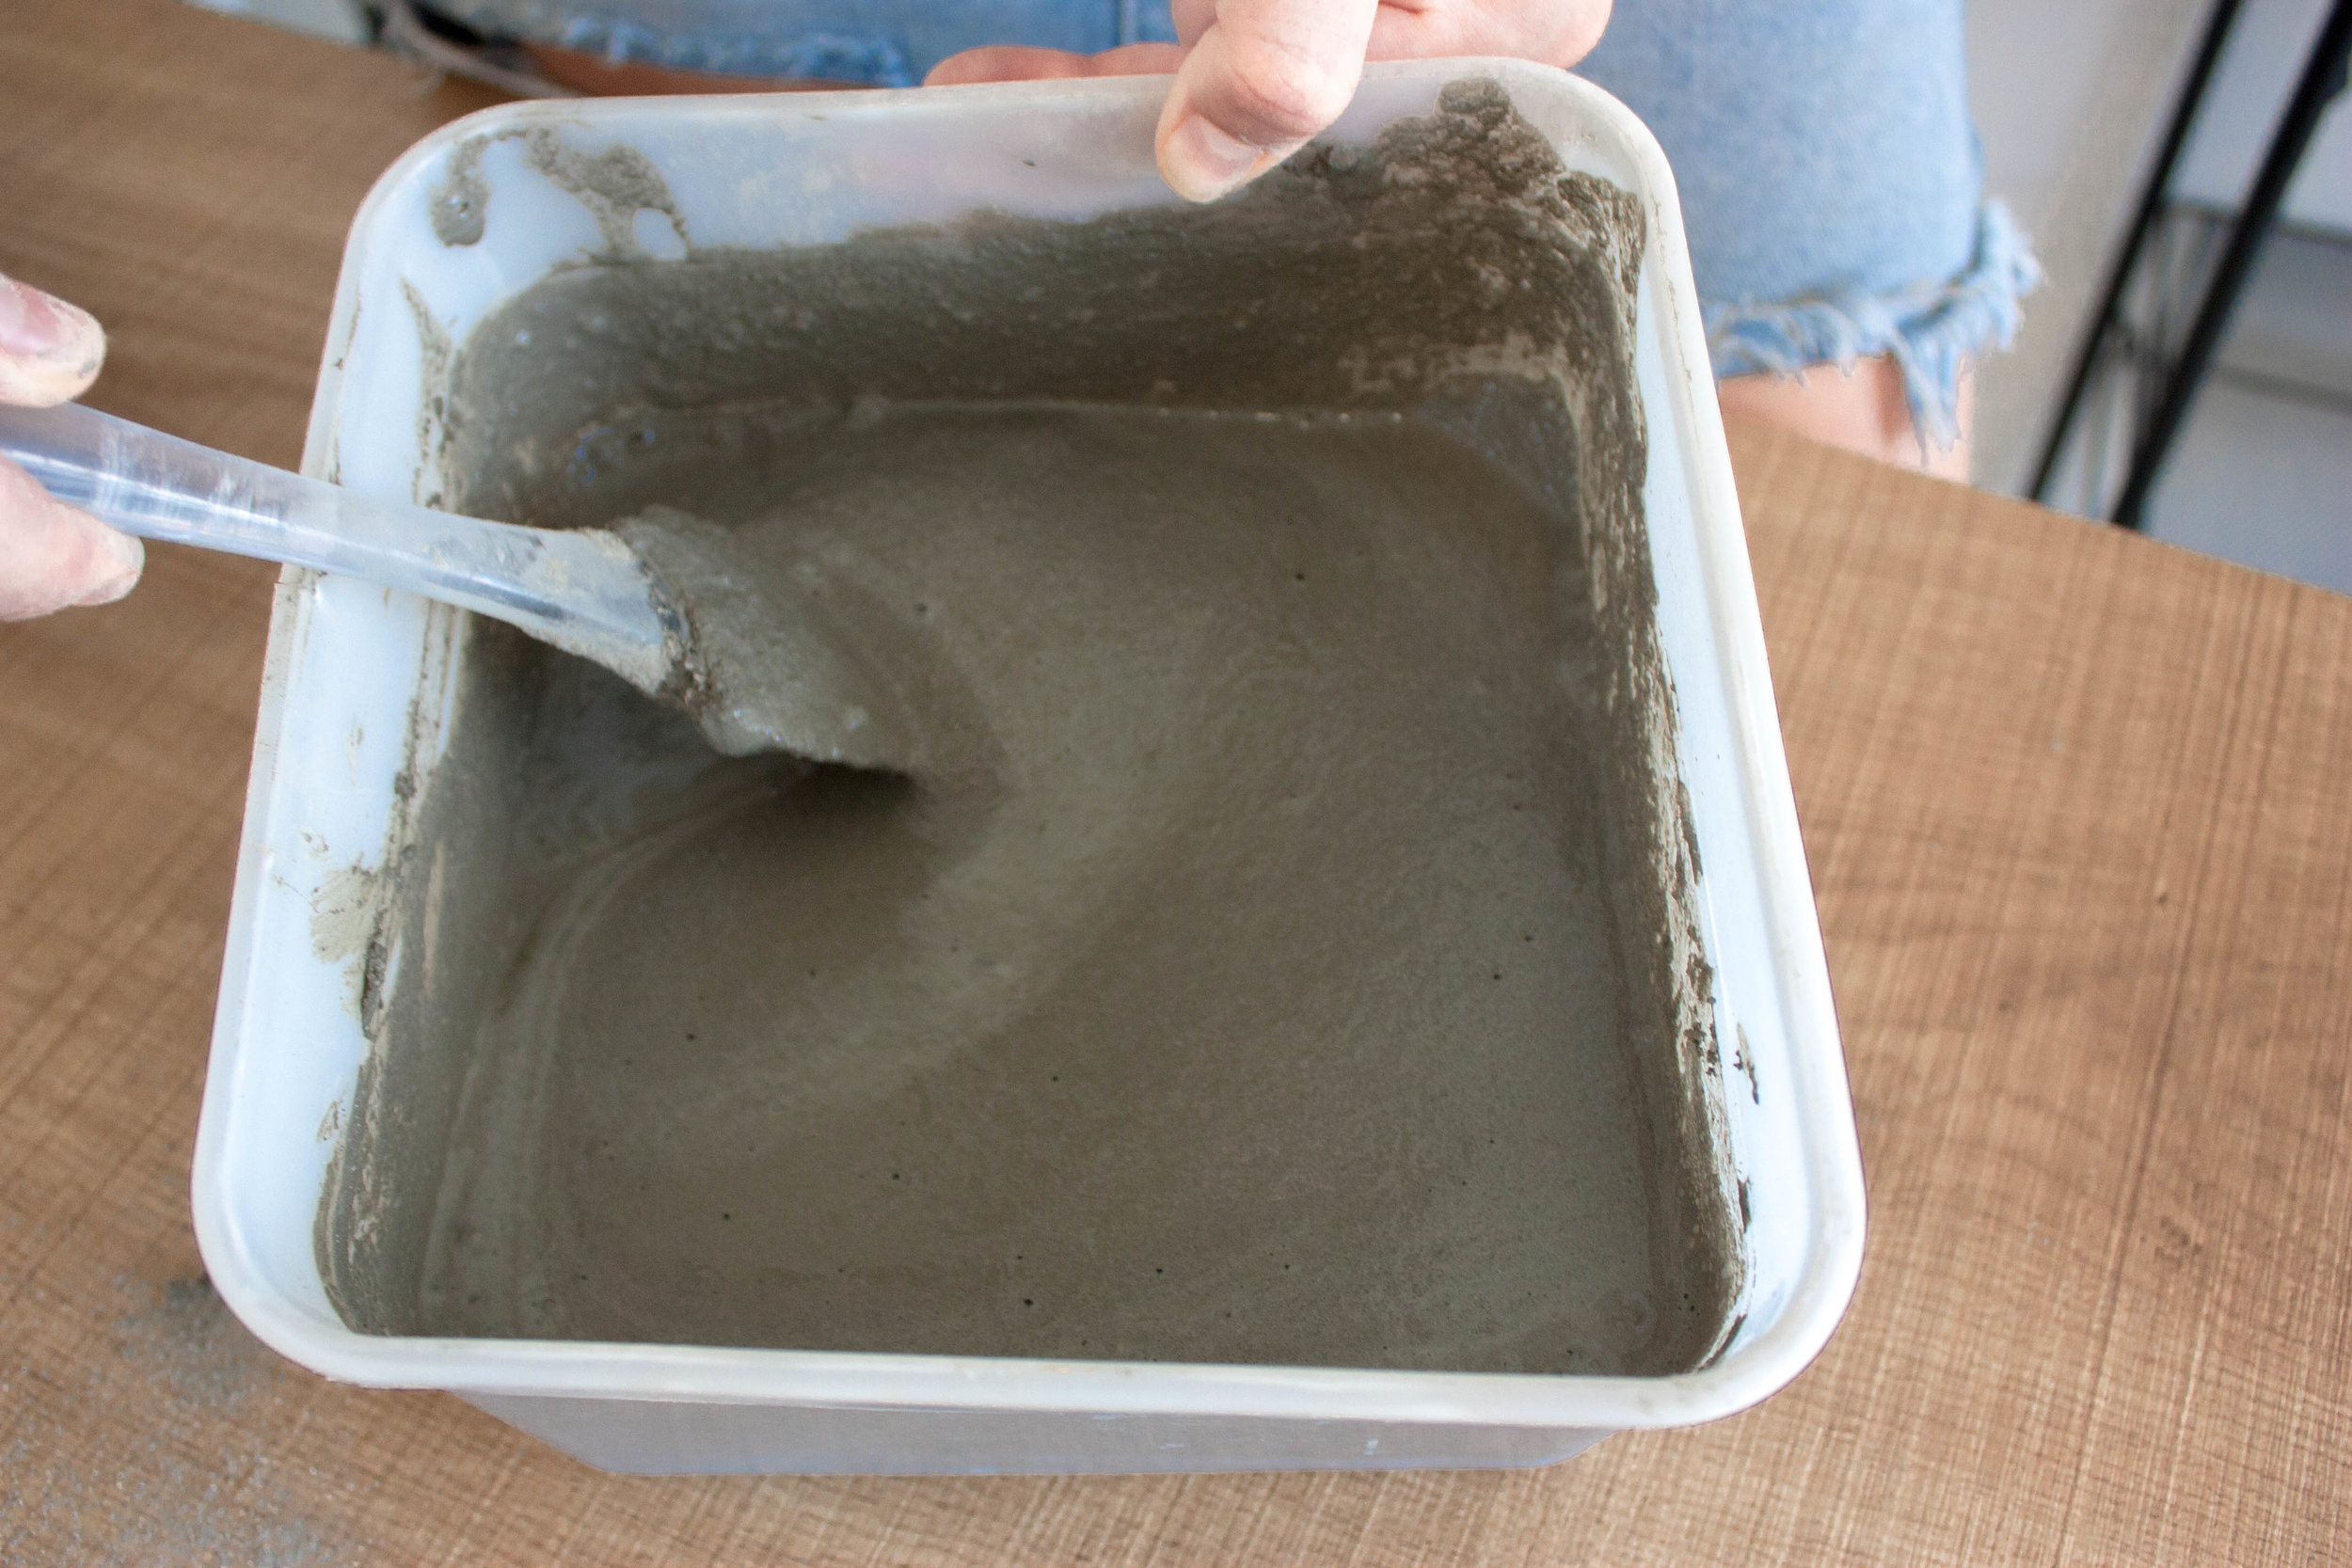 1. Cement consistency -